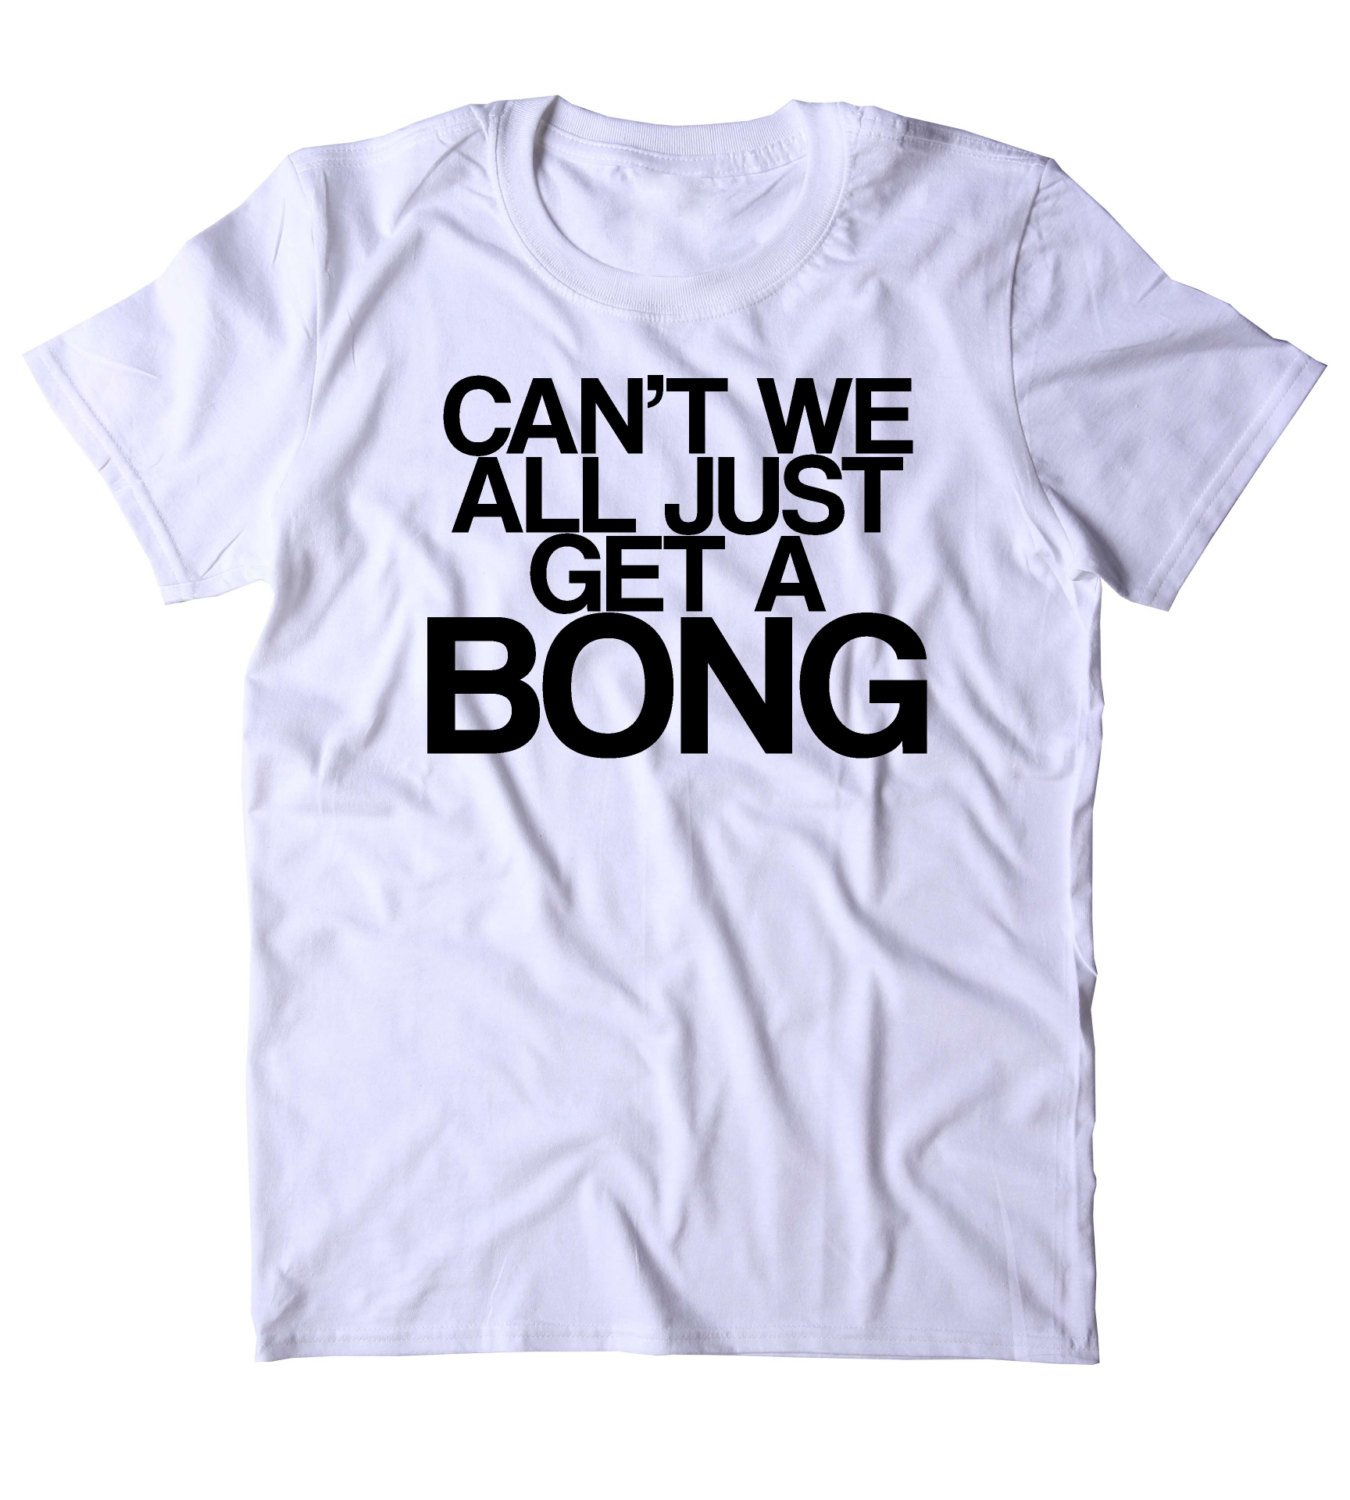 Image of Can't We All Just Get A Bong Shirt Funny Weed Stoner Marijuana Smoker Blazed T-shirt